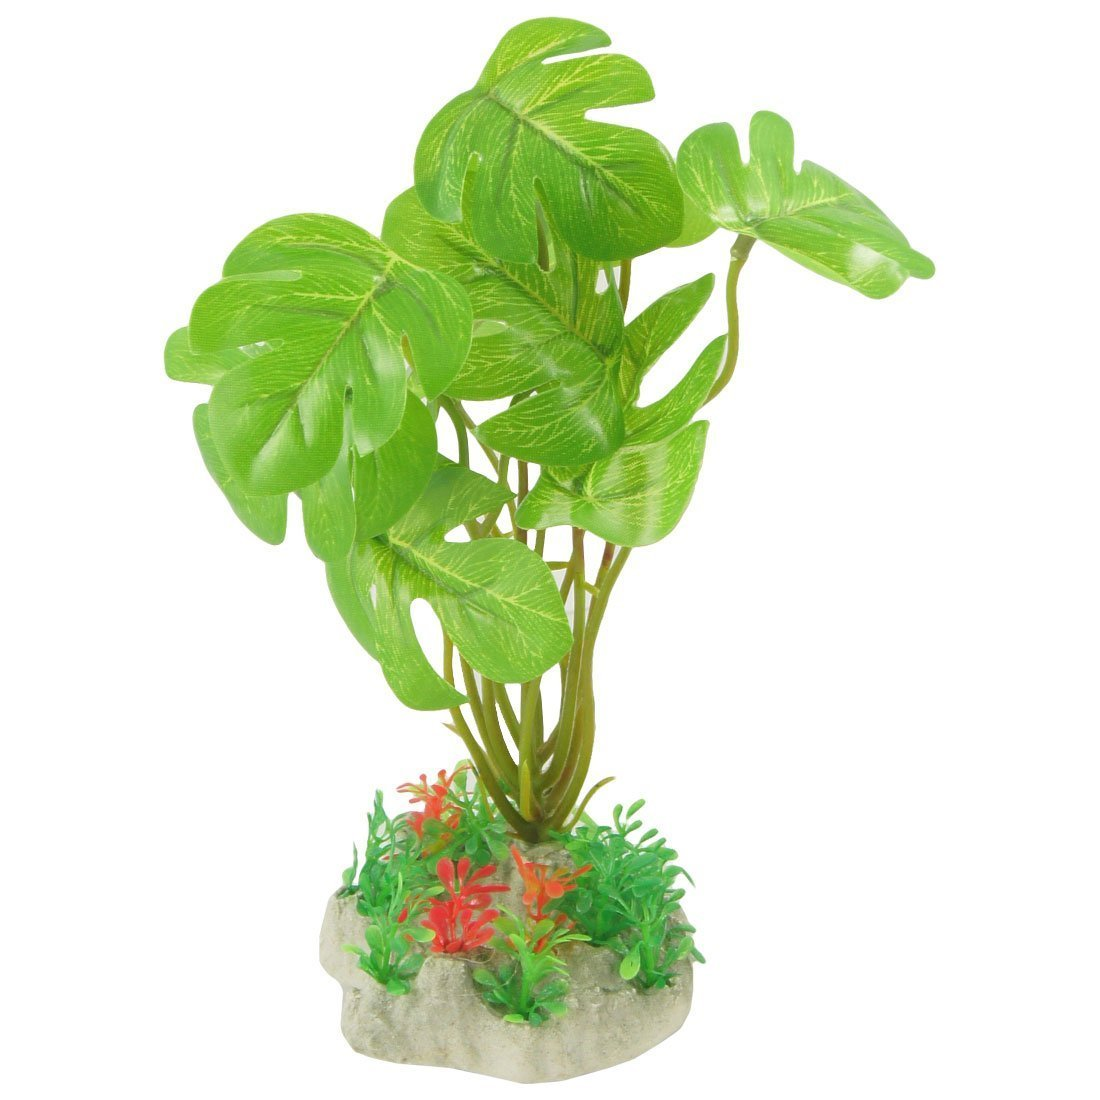 1Pc Plastic Fish Tank Emulational Aquarium Plant Aquatic Grass Ornament